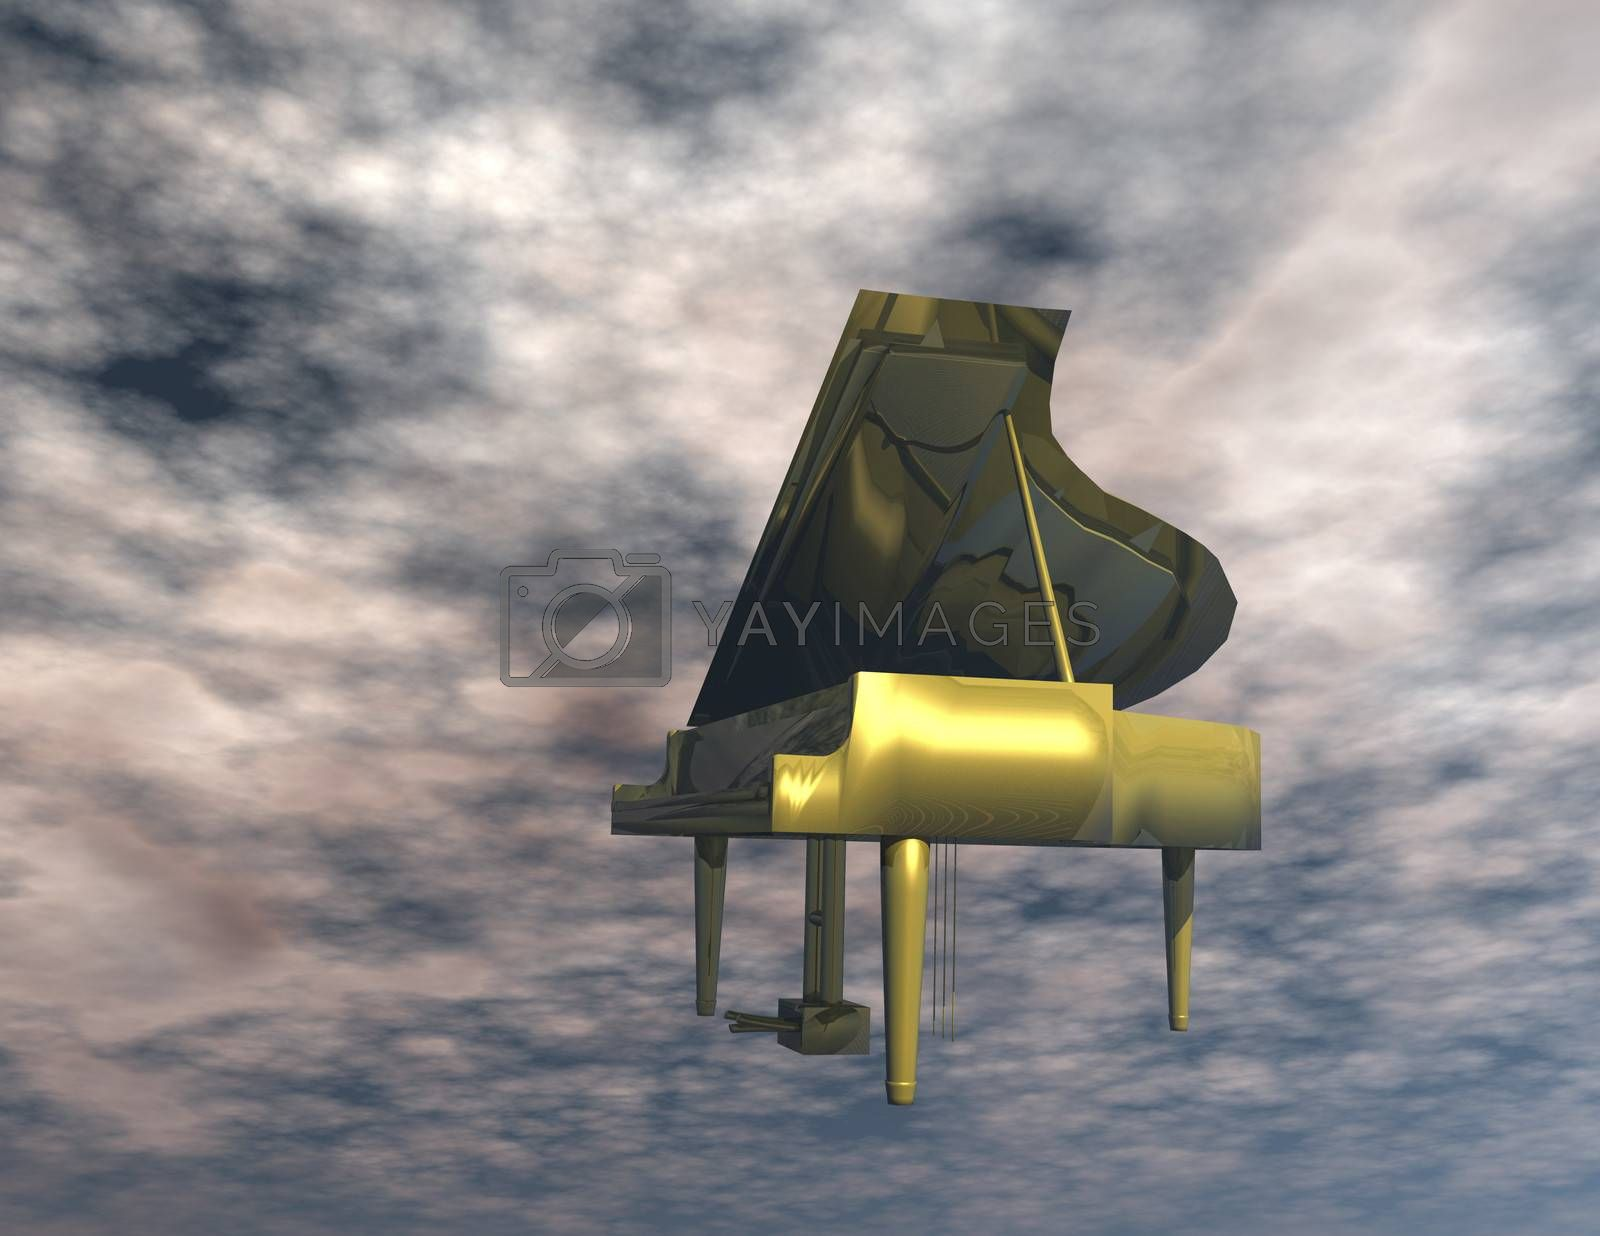 Digital Illustration of a Piano